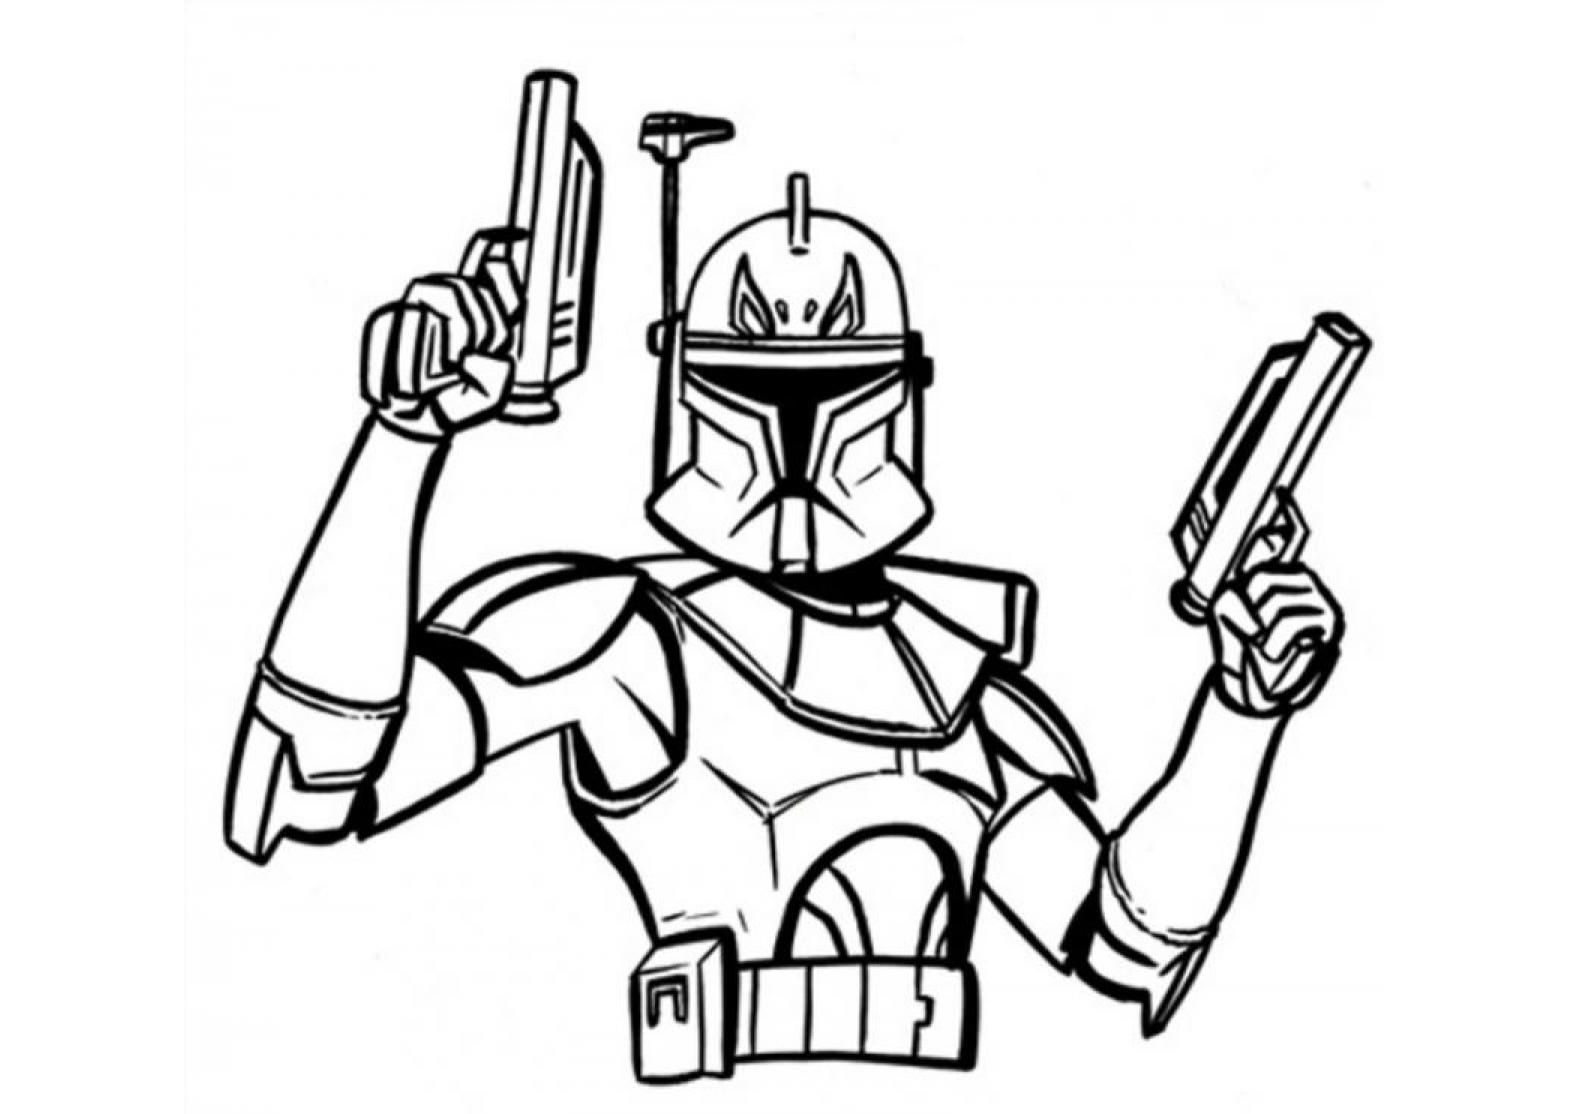 star wars the clone wars pictures to print r2d2 in star wars coloring page download print online to wars star wars pictures the print clone